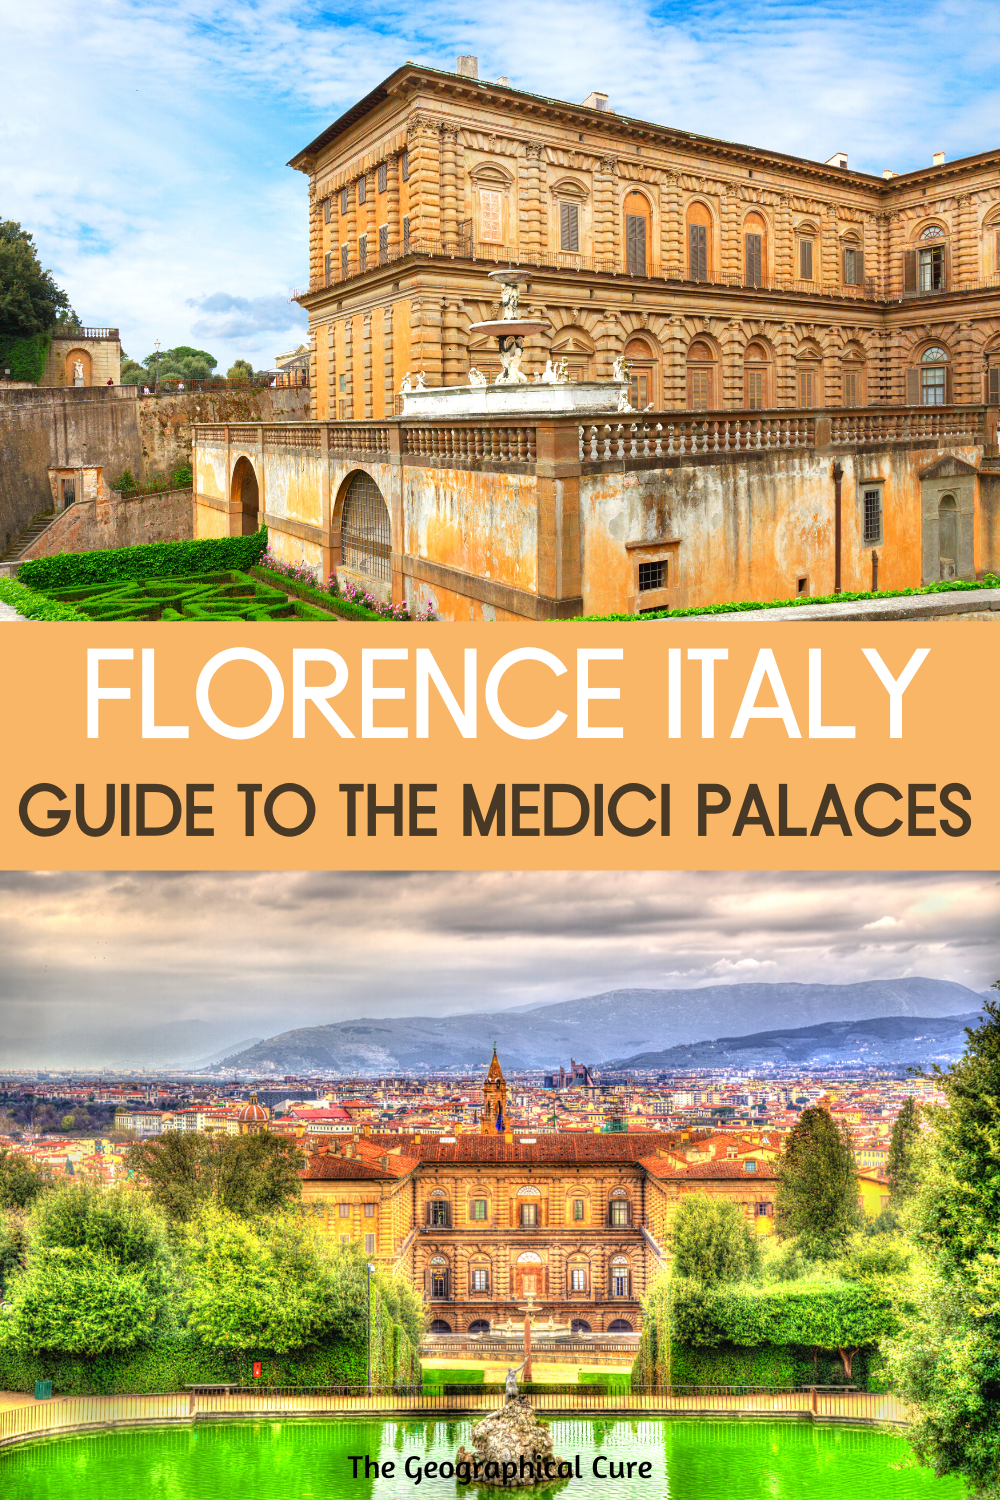 Guide to the Medici Palaces in Florence